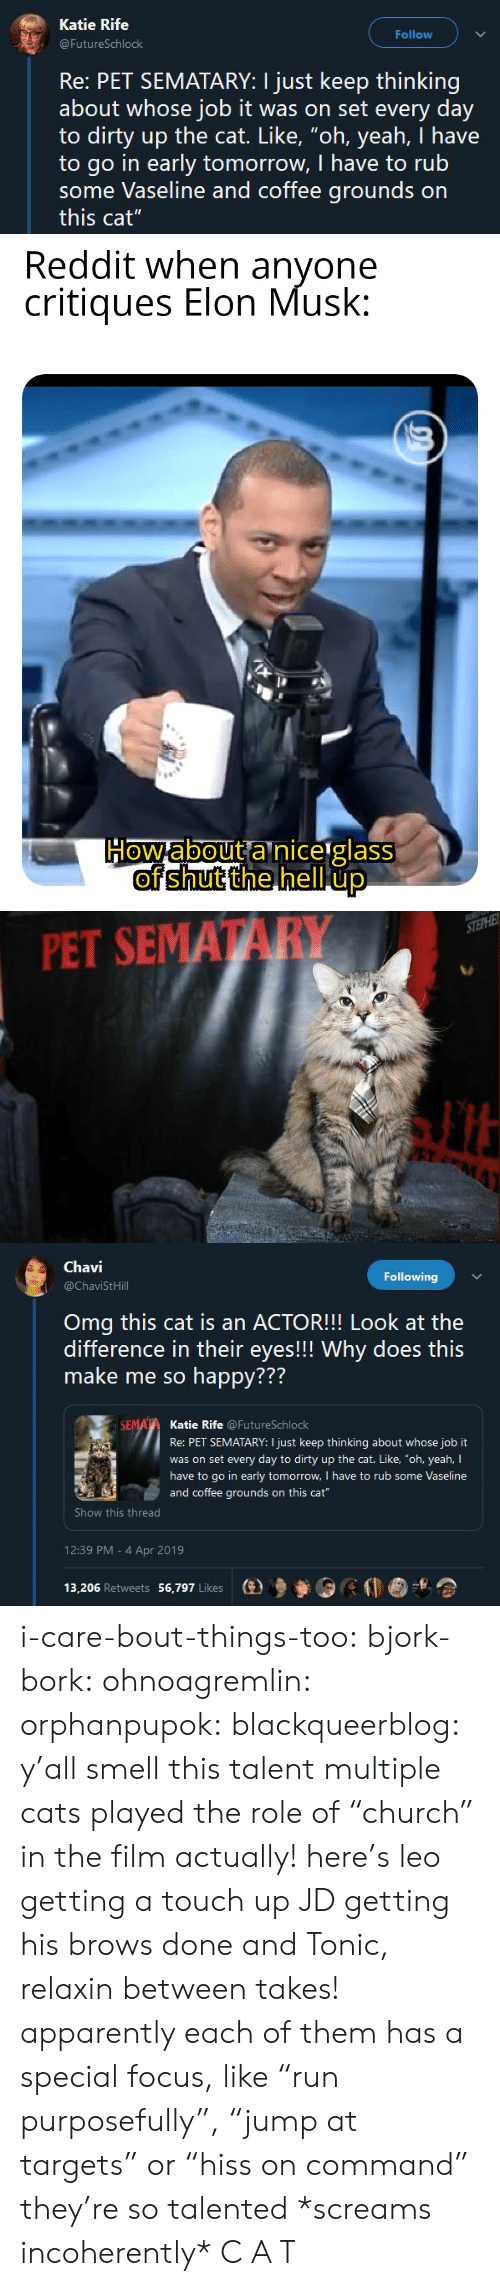 """Apparently, Cats, and Omg: Katie Rife  Follow  FutureSchlock  Re: PET SEMATARY: I just keep thinking  about whose job it was on set every day  to dirty up the cat. Like, """"oh, yeah, I have  to go in early tomorrow, I have to rub  some Vaseline and coffee grounds on  this cat""""   PET SEMATARY   Chavi  @ChaviStHill  Following  Omg this cat is an ACTOR!!! Look at the  difference in their eyes!!! Why does this  make me so happy???  772  Katie Rife @FutureSchlock  Re: PET SEMATARY: I just keep thinking about whose job it  was on set every day to dirty up the cat. Like, """"oh, yeah, I  have to go in early tomorrow, I have to rub some Vaseline  and coffee grounds on this cat  Show this thread  12:39 PM - 4 Apr 2019  13,206 Retweets 56,797 Likes  (e)乡參0 i-care-bout-things-too:  bjork-bork:  ohnoagremlin:  orphanpupok:  blackqueerblog: y'all smell this talent  multiple cats played the role of """"church"""" in the film actually! here's leo getting a touch up JD getting his brows done and Tonic, relaxin between takes!   apparently each of them has a special focus, like """"run purposefully"""", """"jump at targets"""" or """"hiss on command"""" they're so talented     *screams incoherently* C A T"""